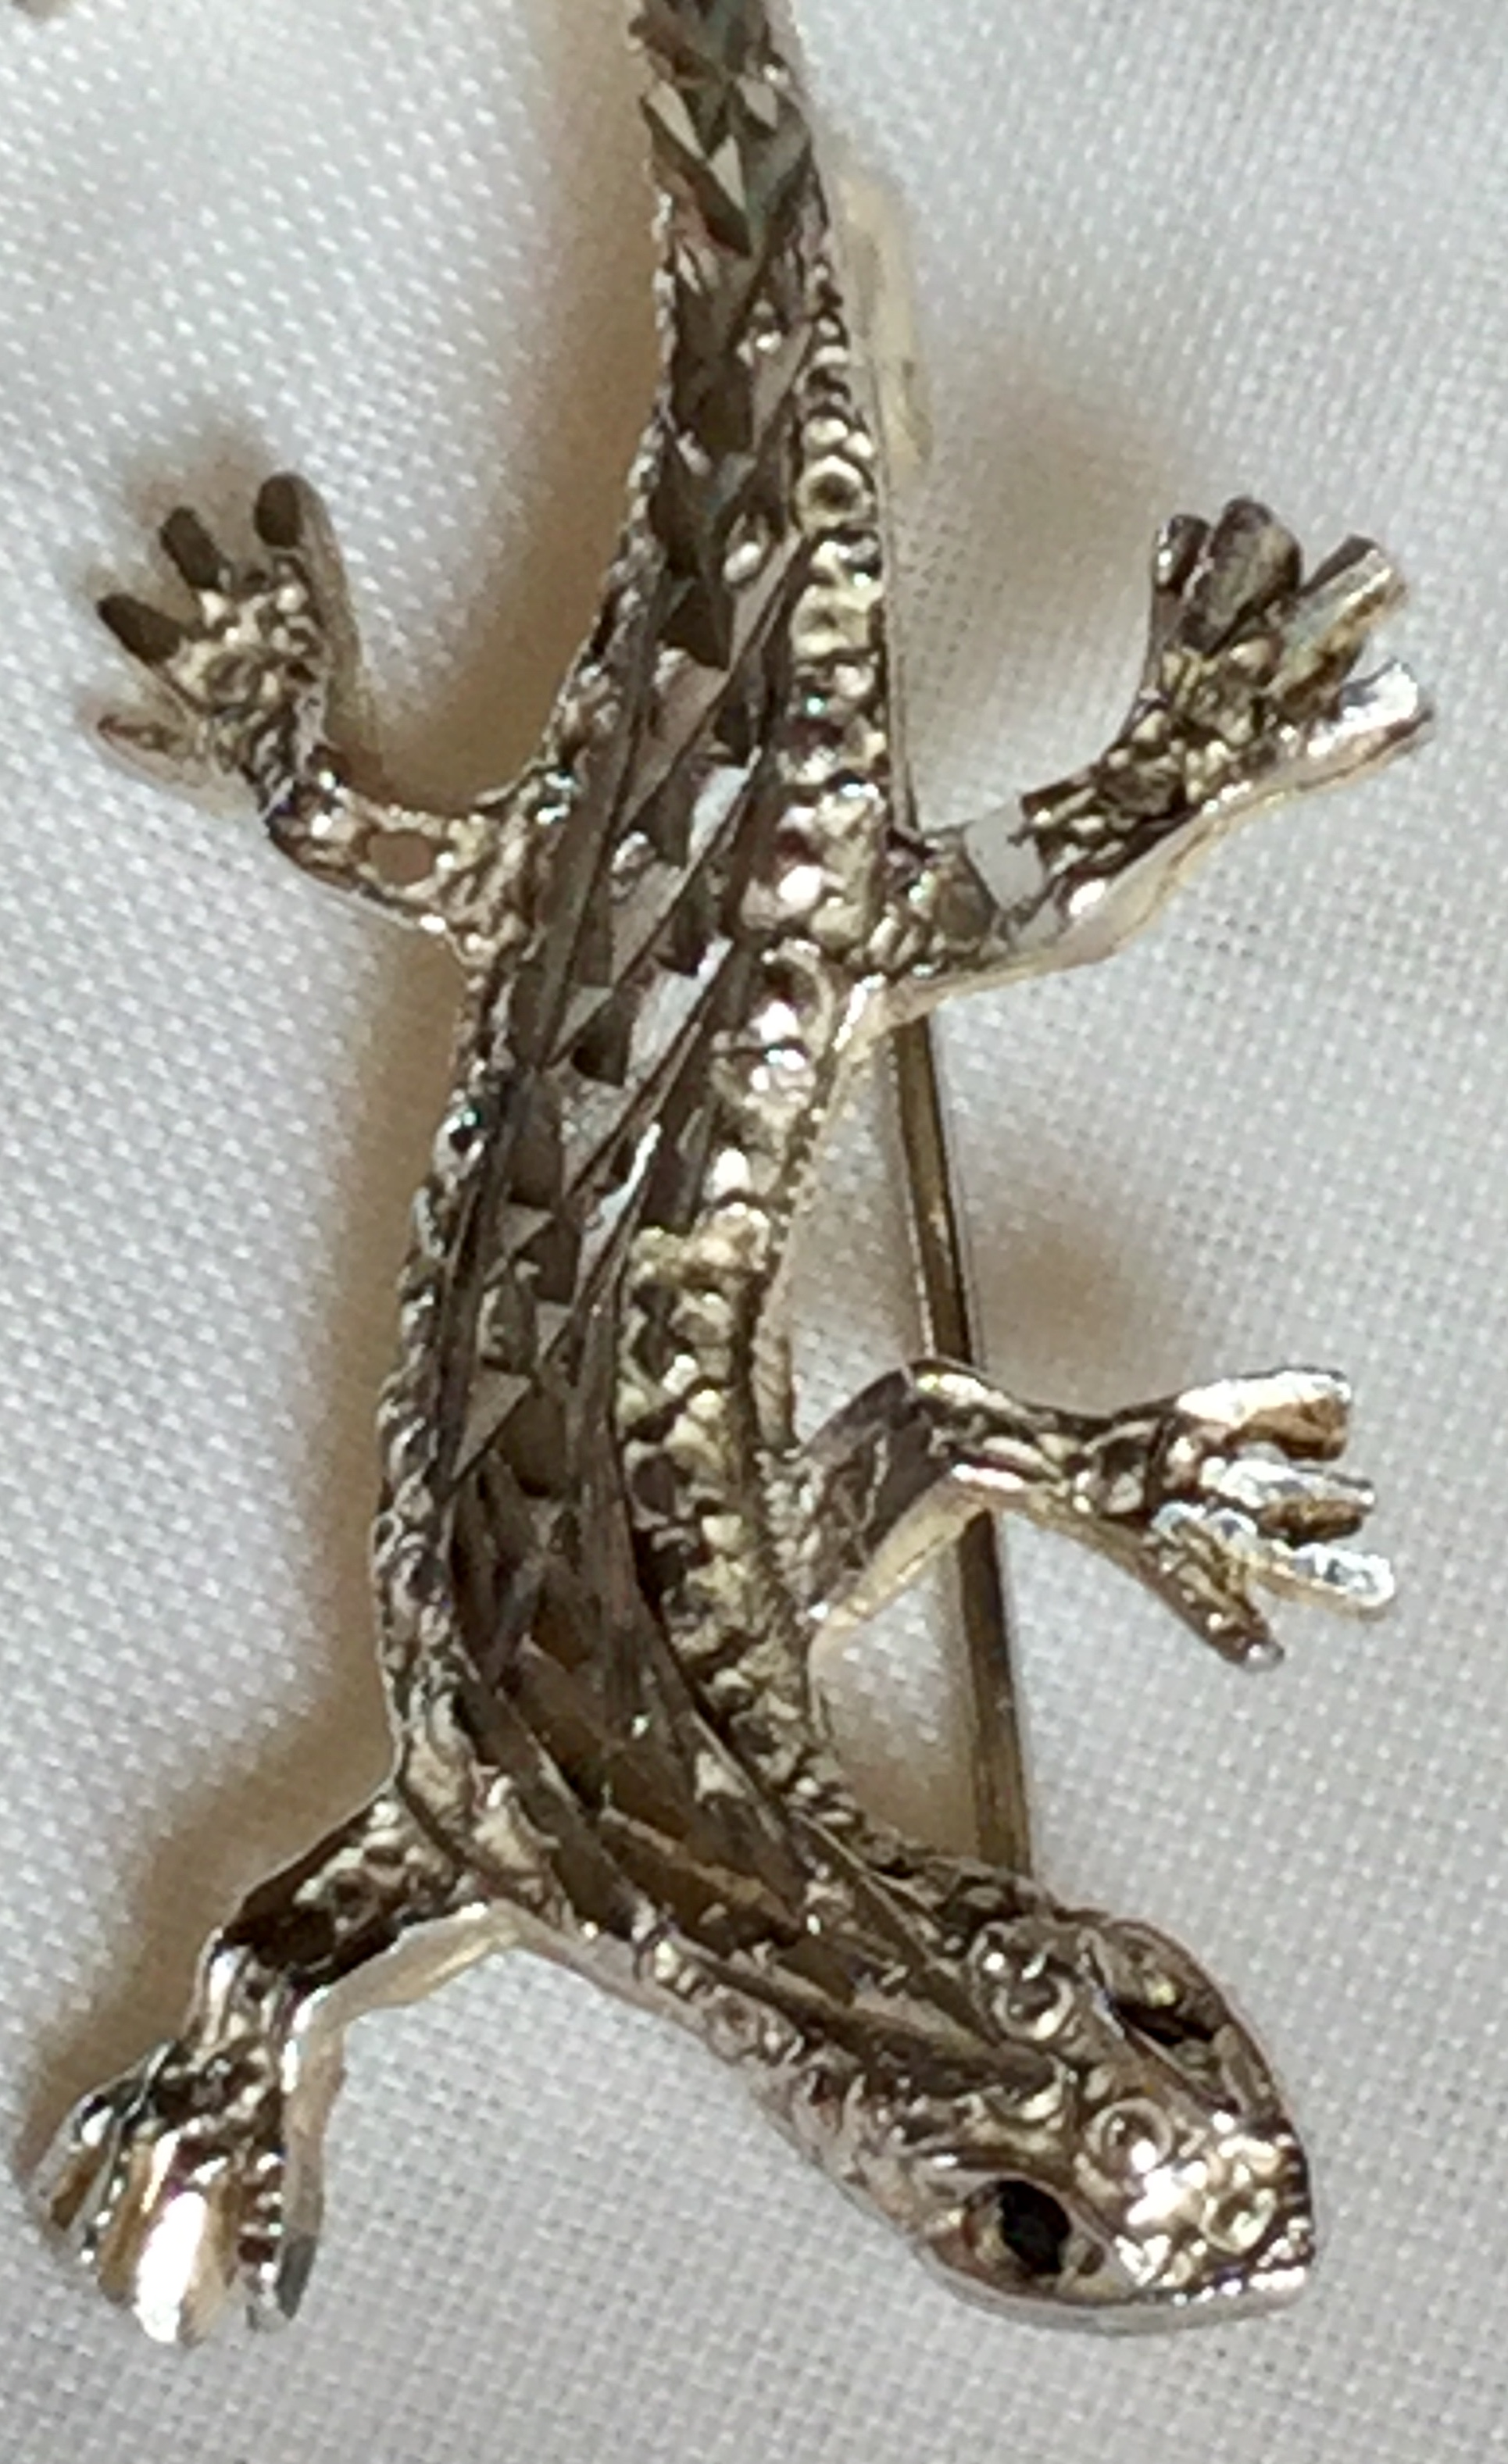 Lot 31 - Silver Vintage Lizard Brooch with sparkly onyx eyes 4.10 grams